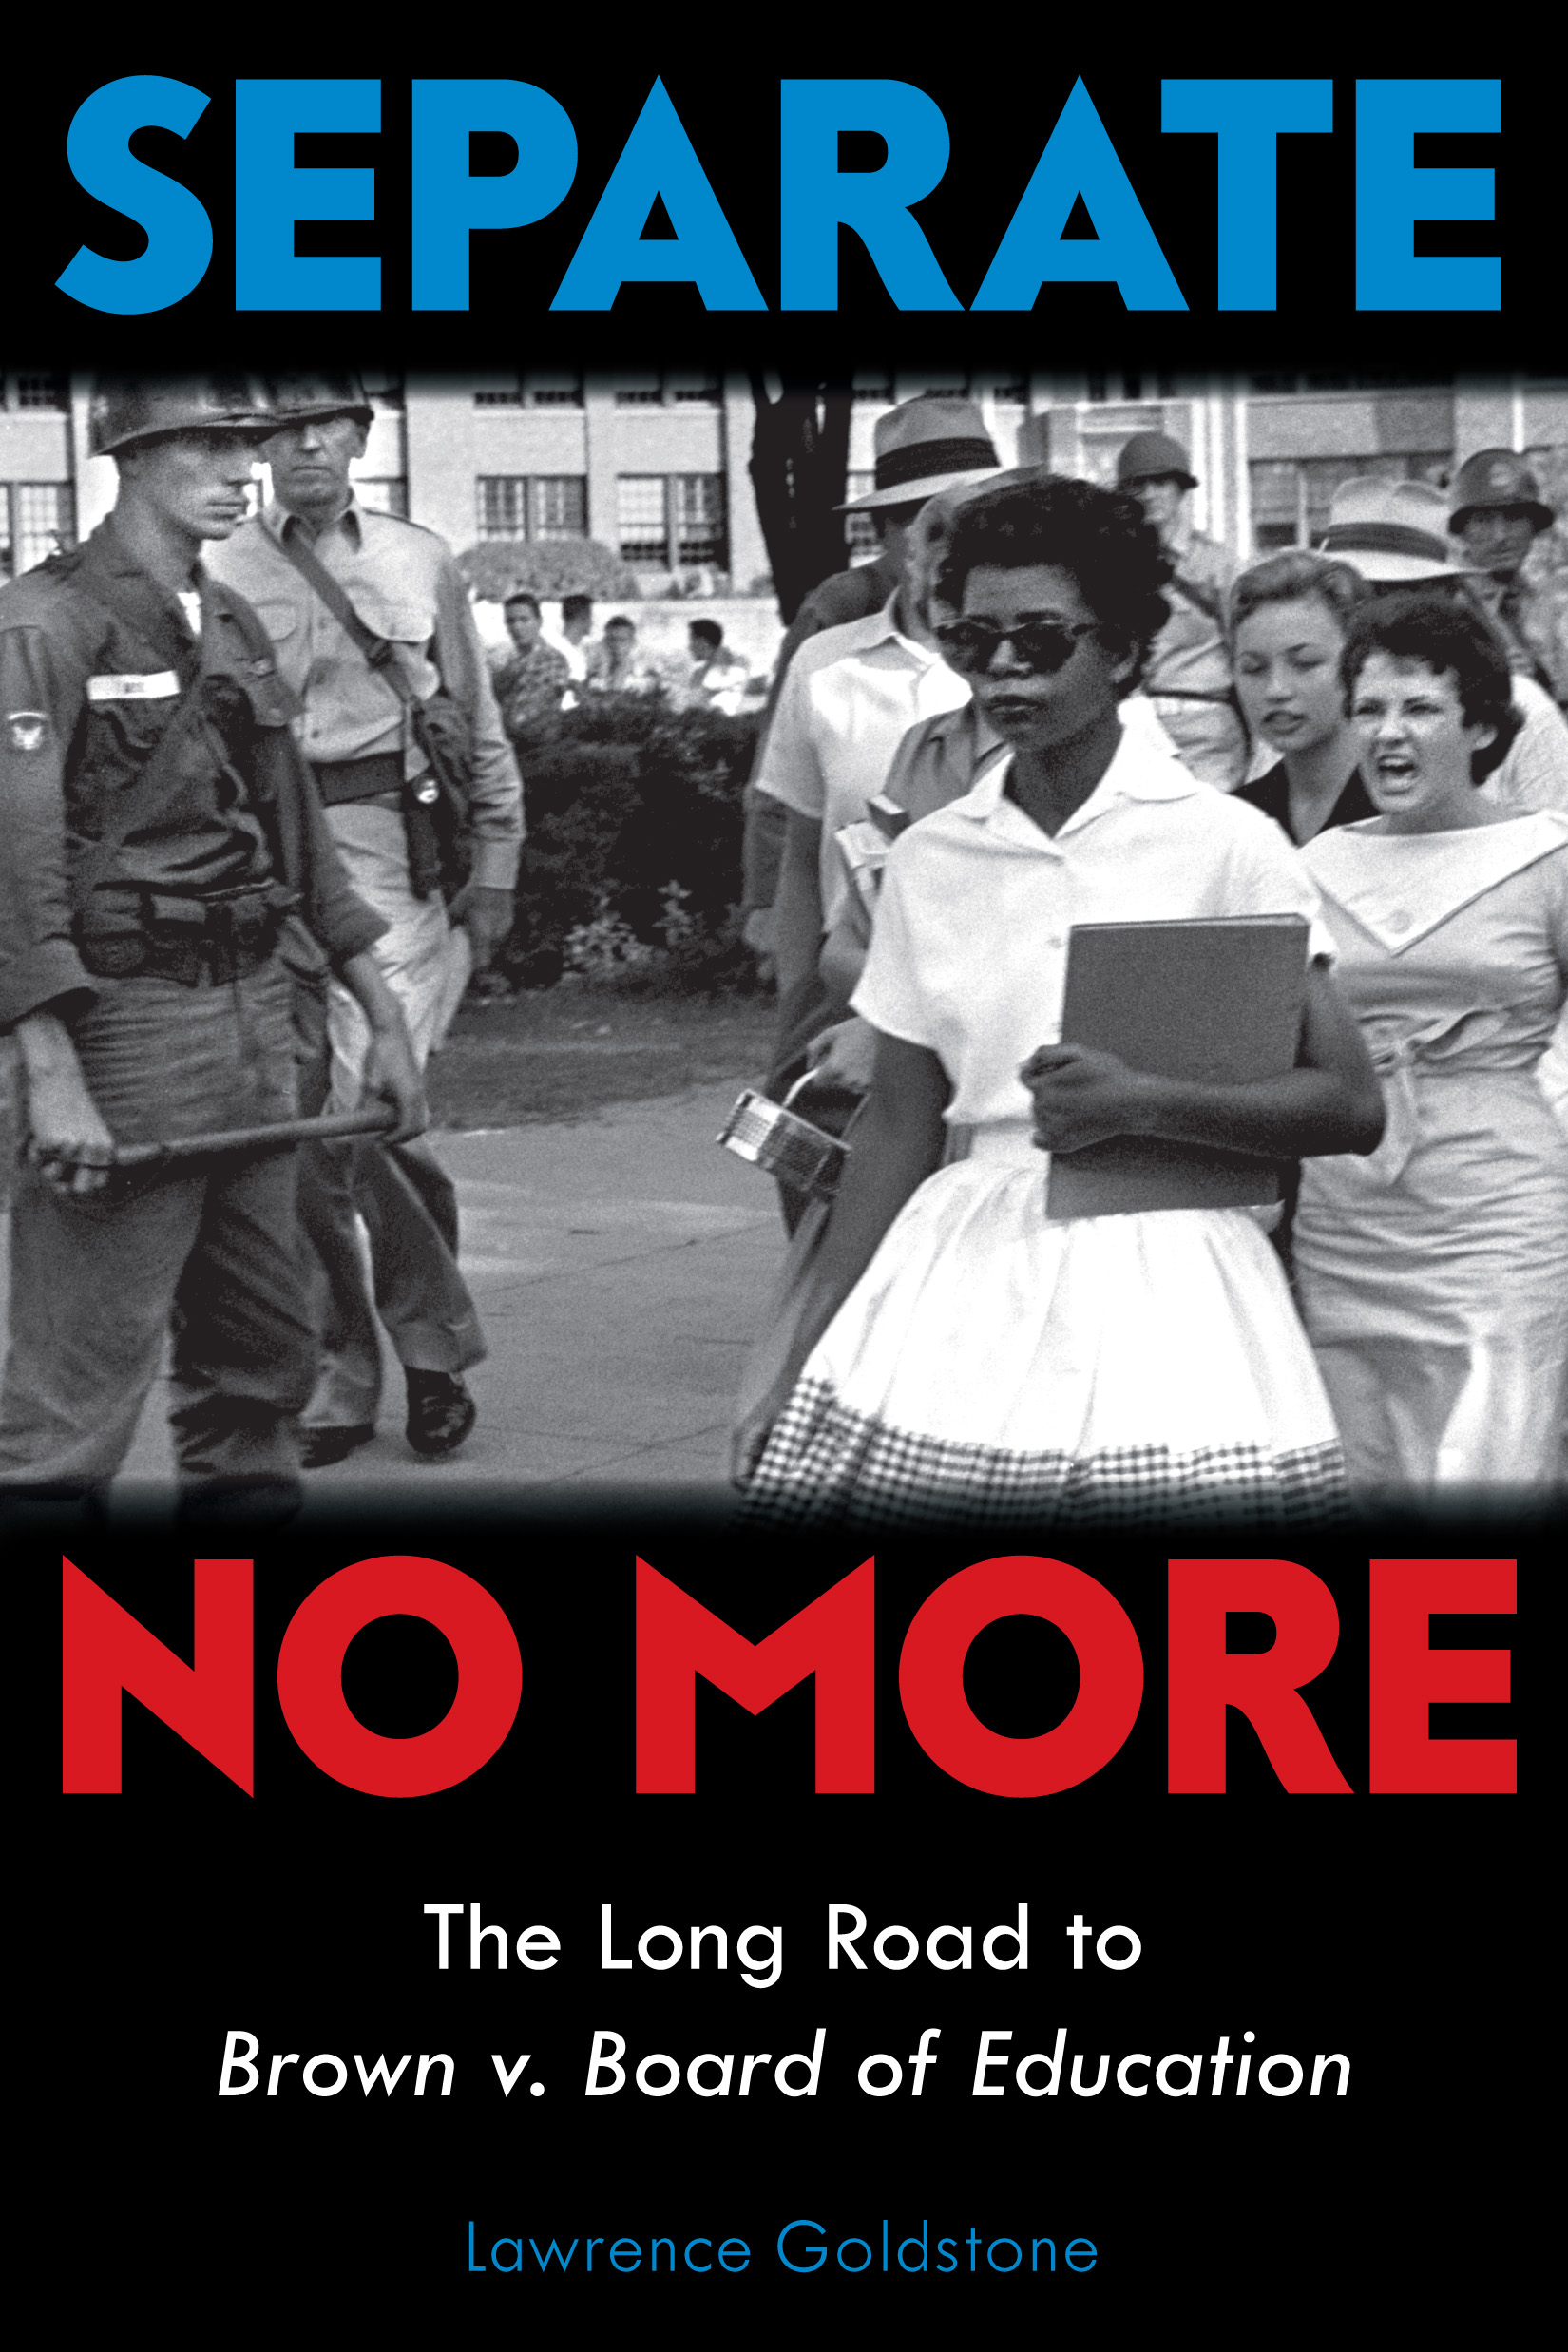 Separate No More: The Long Road to Brown v. Board of Education